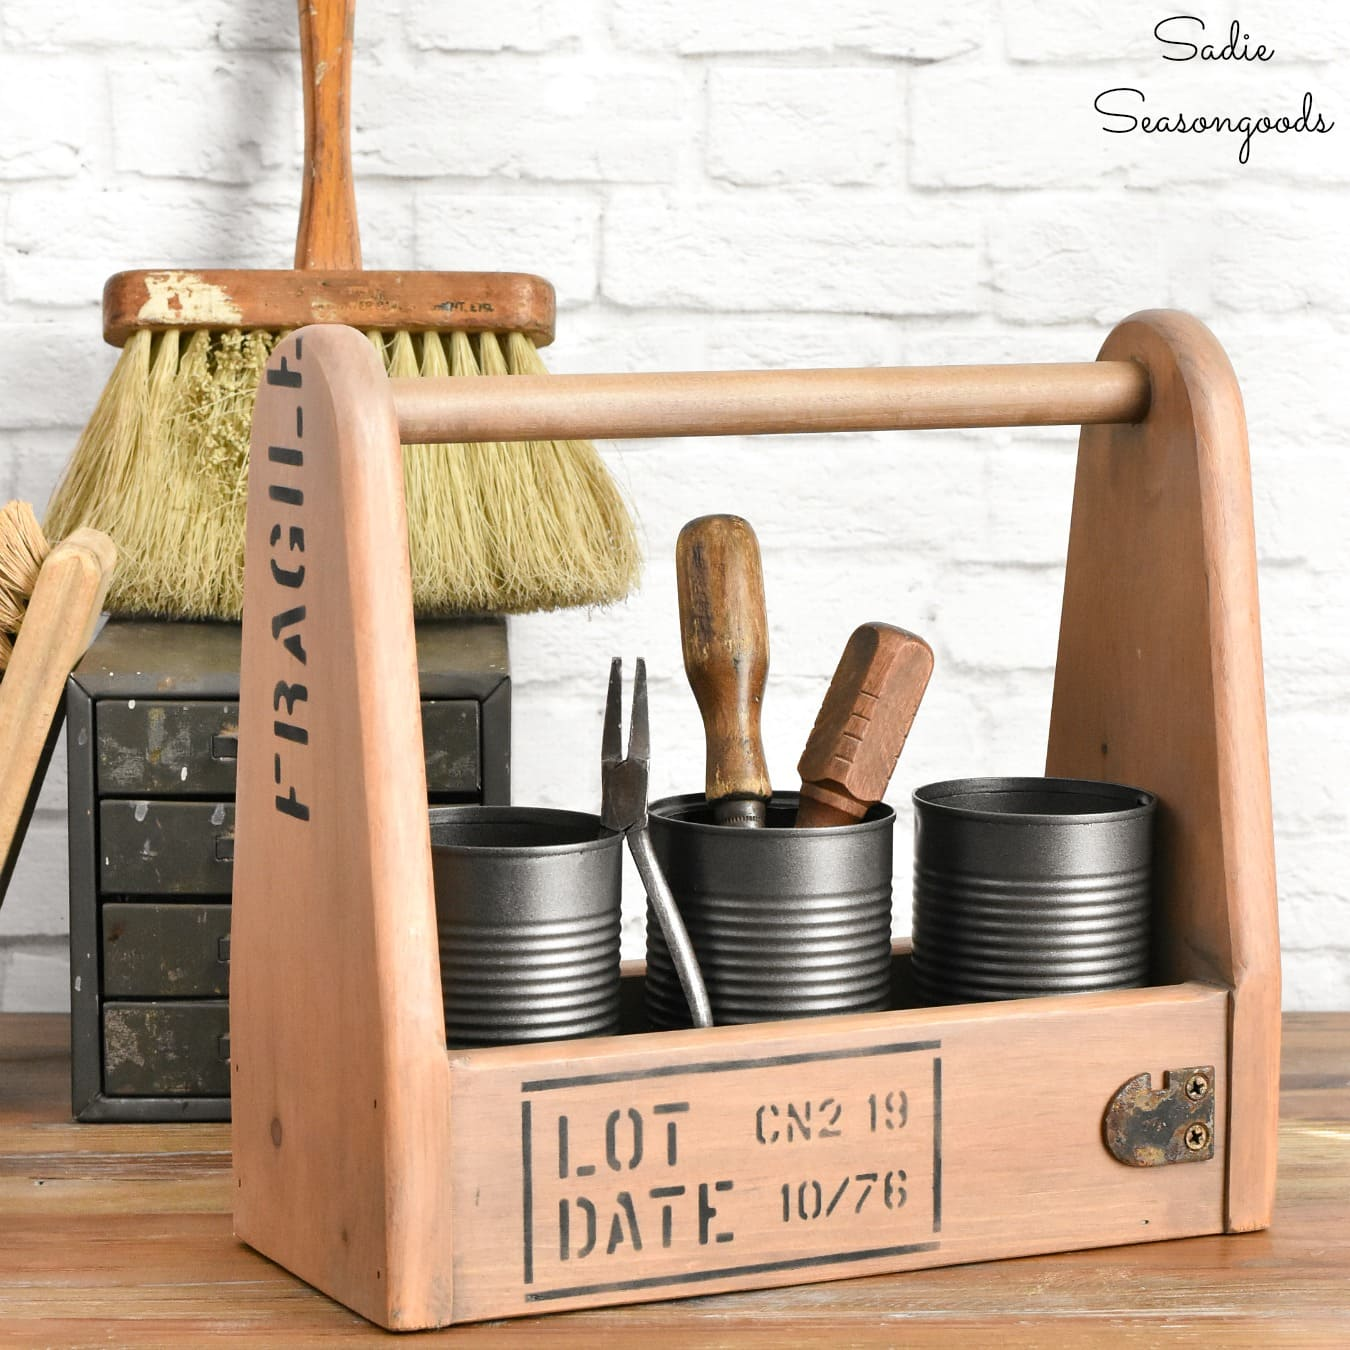 Industrial tool caddy by Sadie Seasongoods, featured on DIY Salvaged Junk Projects 554 on Funky Junk!